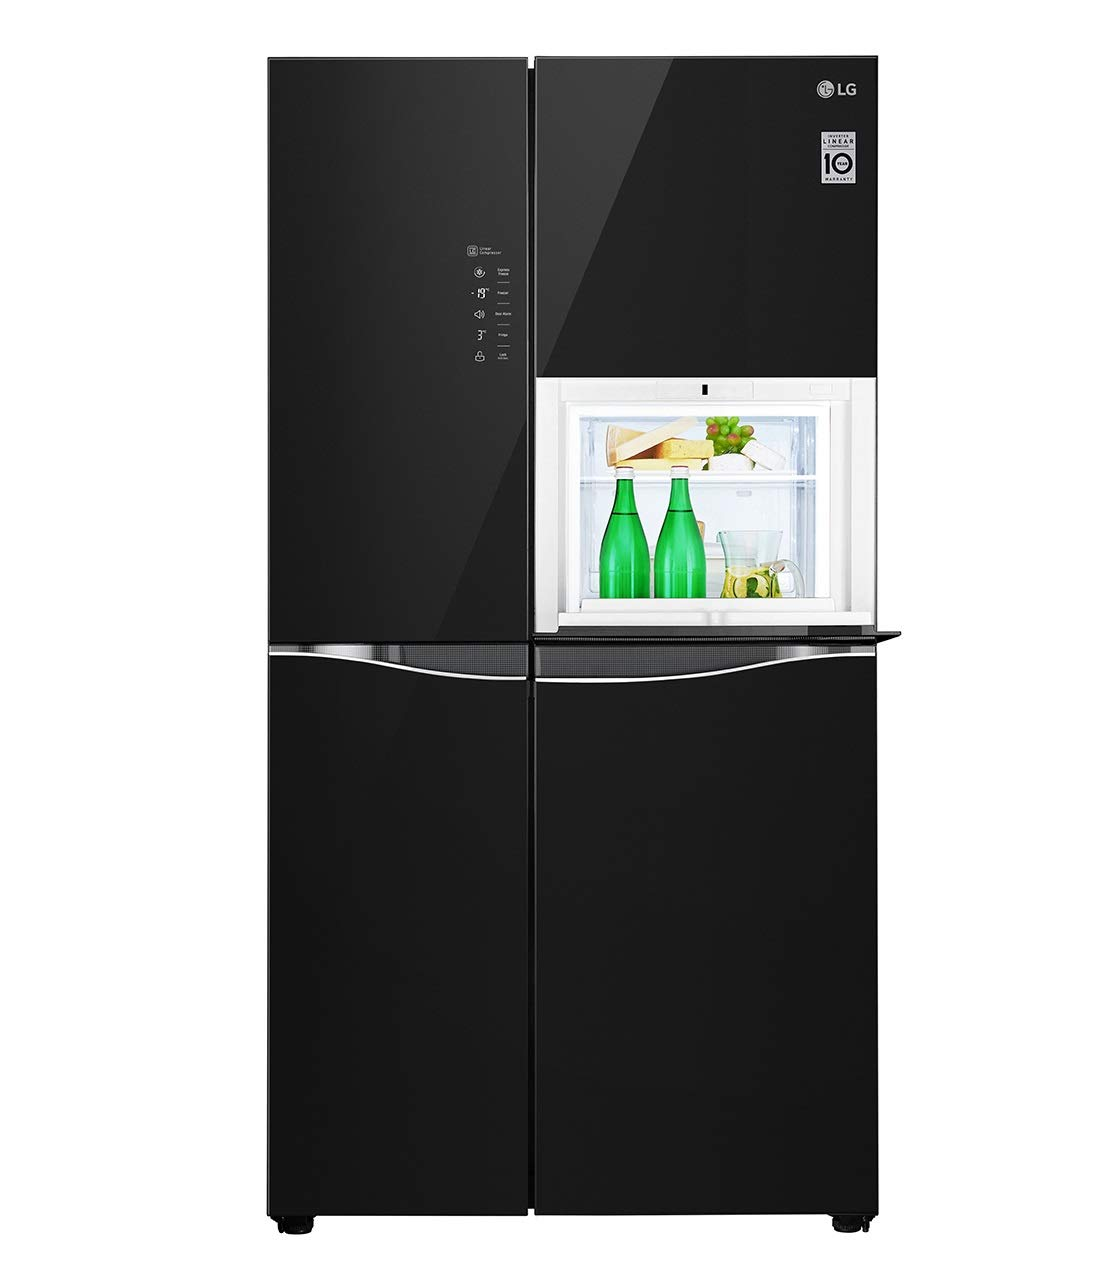 Lg 675 L Inverter Frost Free Side By Side Refrigerator Gc C247ugbm Black Amazon In Home Kitchen